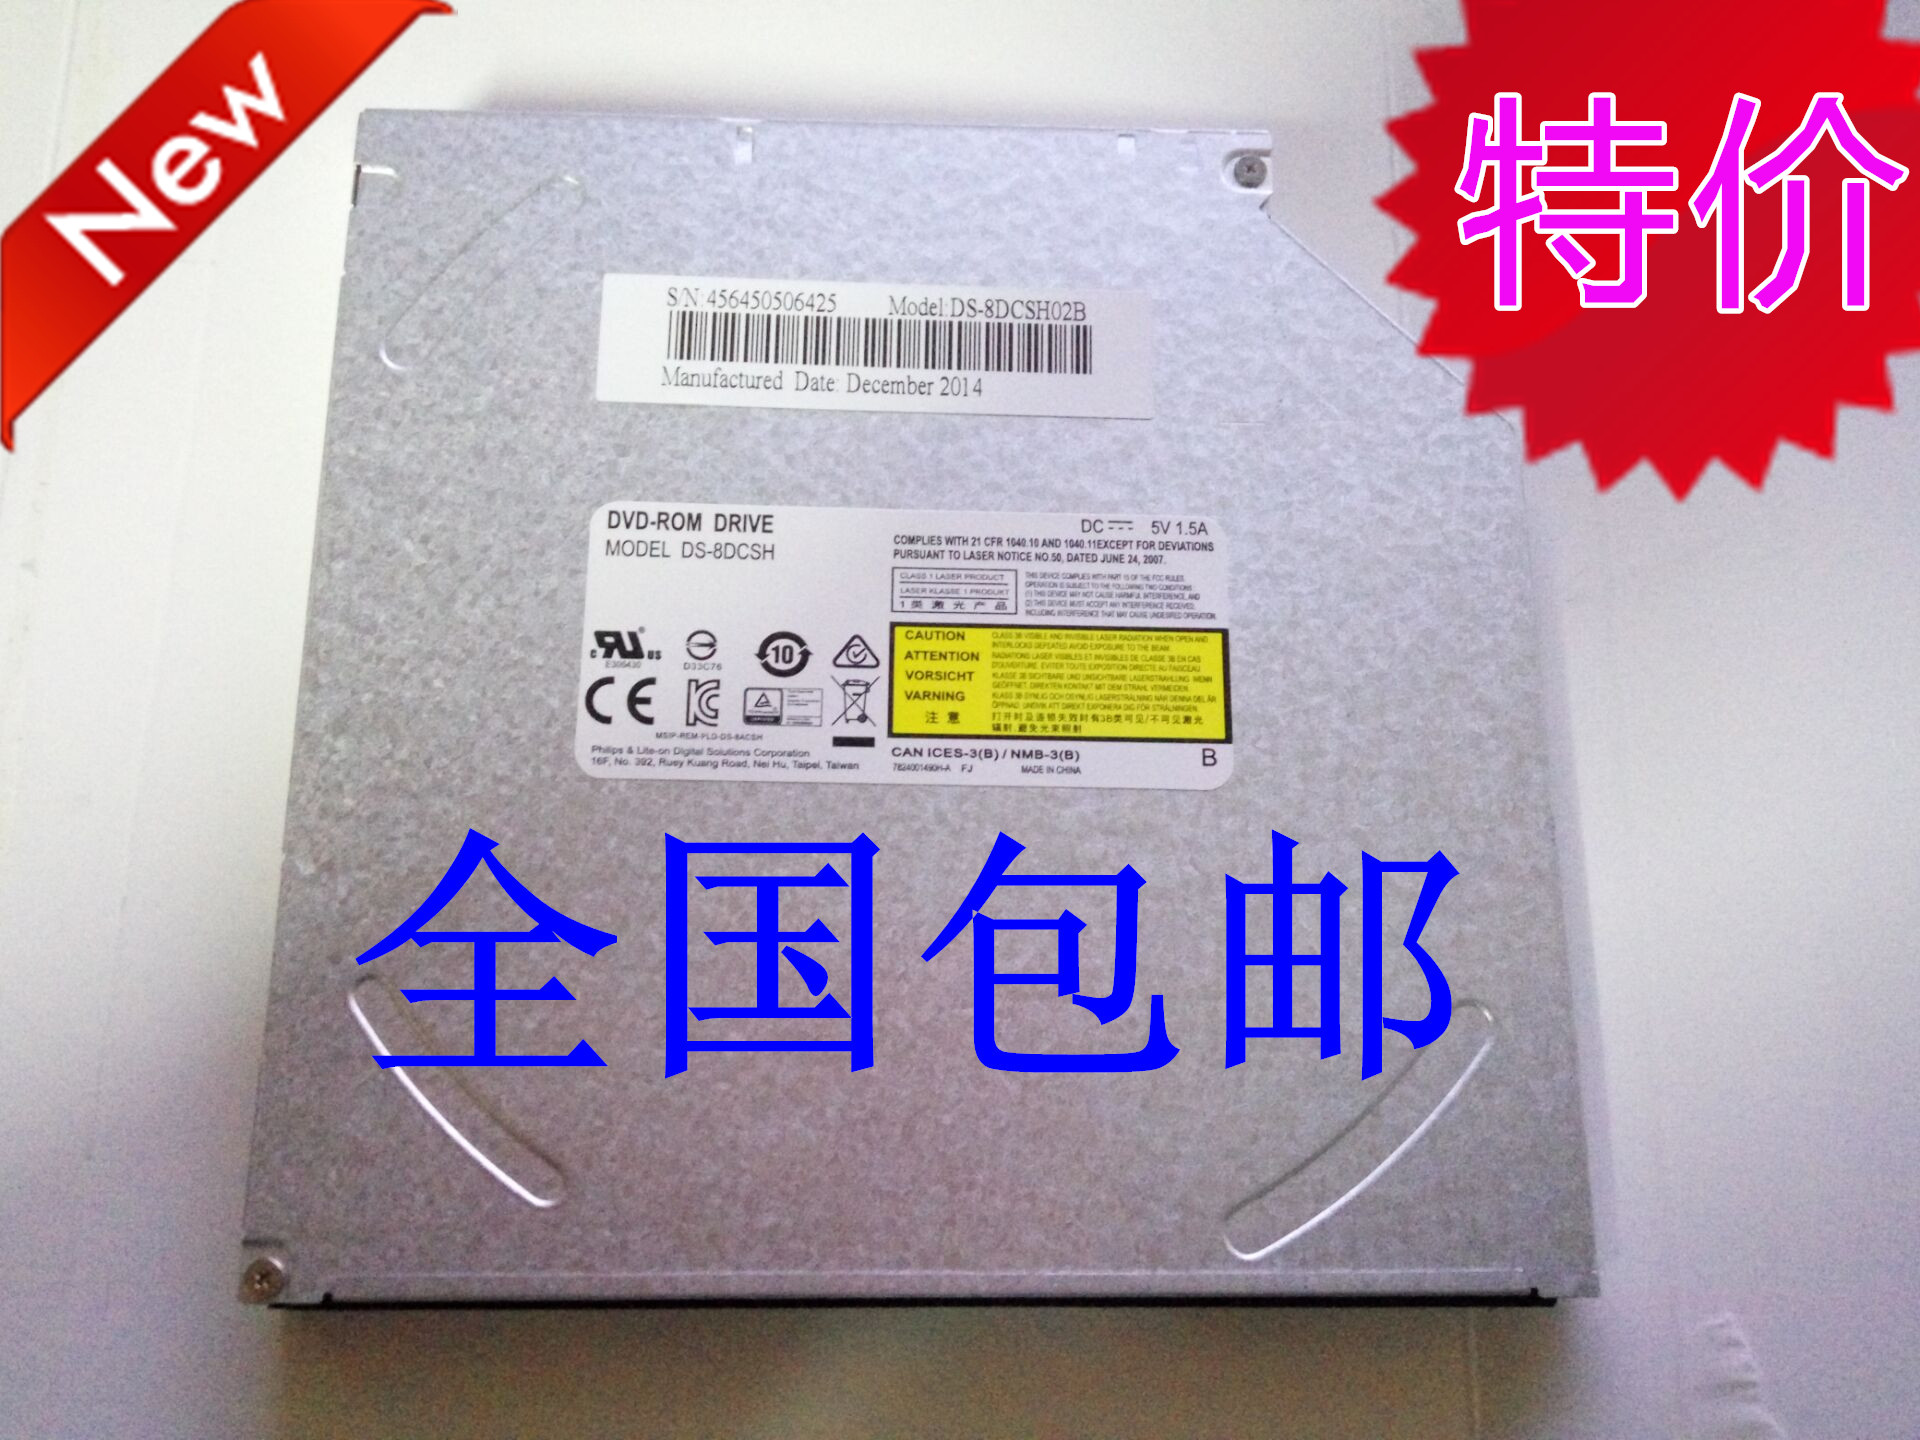 Sell Fujitsu P8110 S761 SH782 P772 T902 Laptop with built-in DVD-ROM